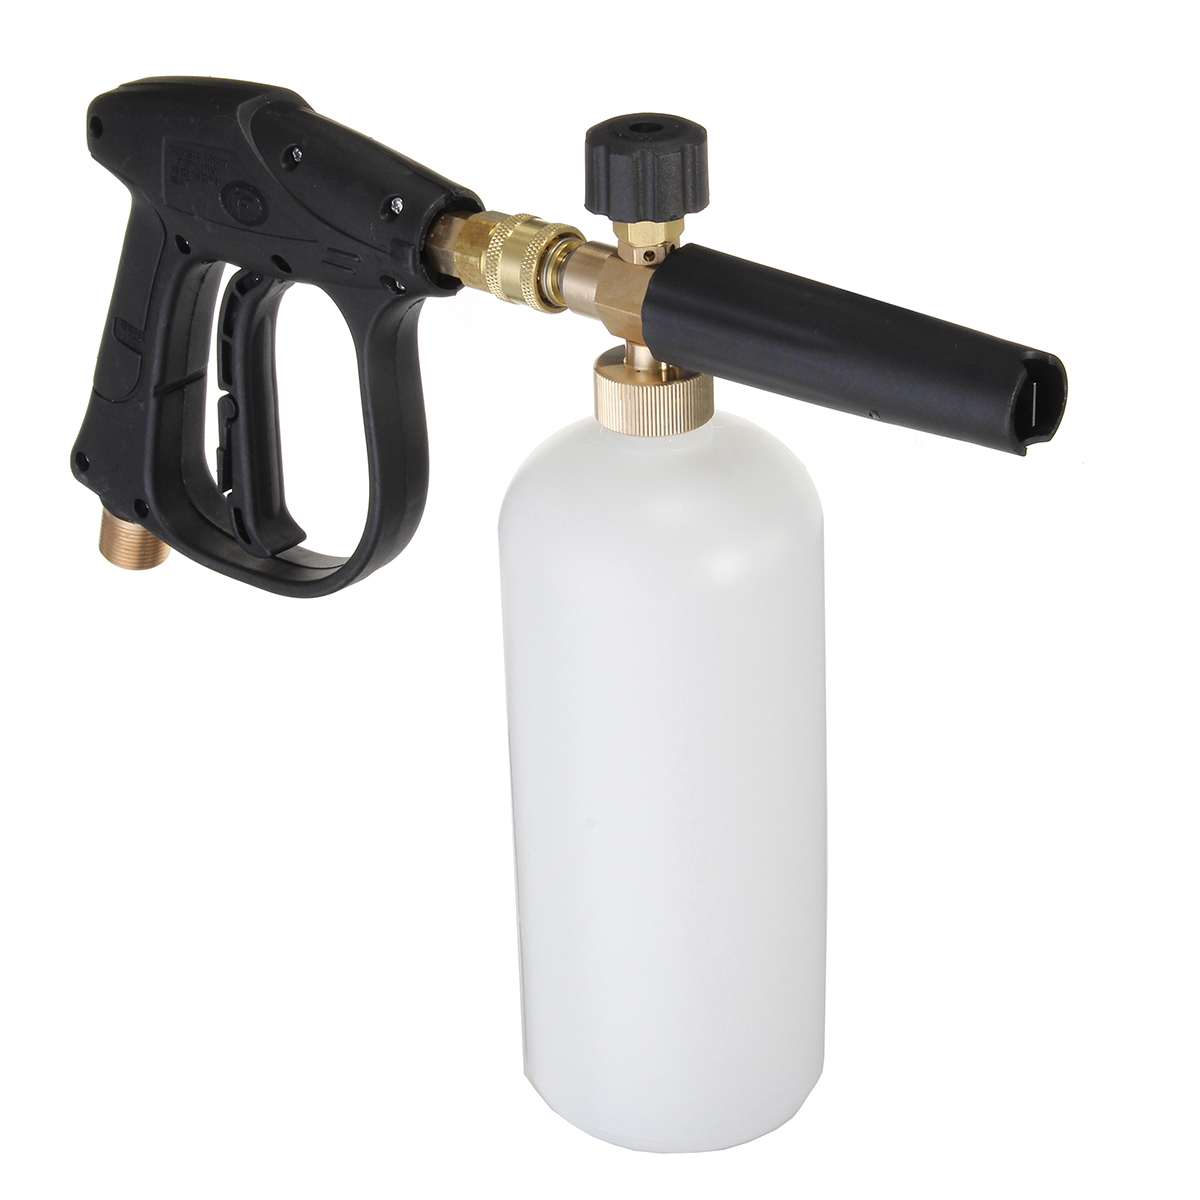 Pressure Washer Gun >> High Pressure Washer Gun Water Jet Snow Foam Lance Cannon W Glove 5